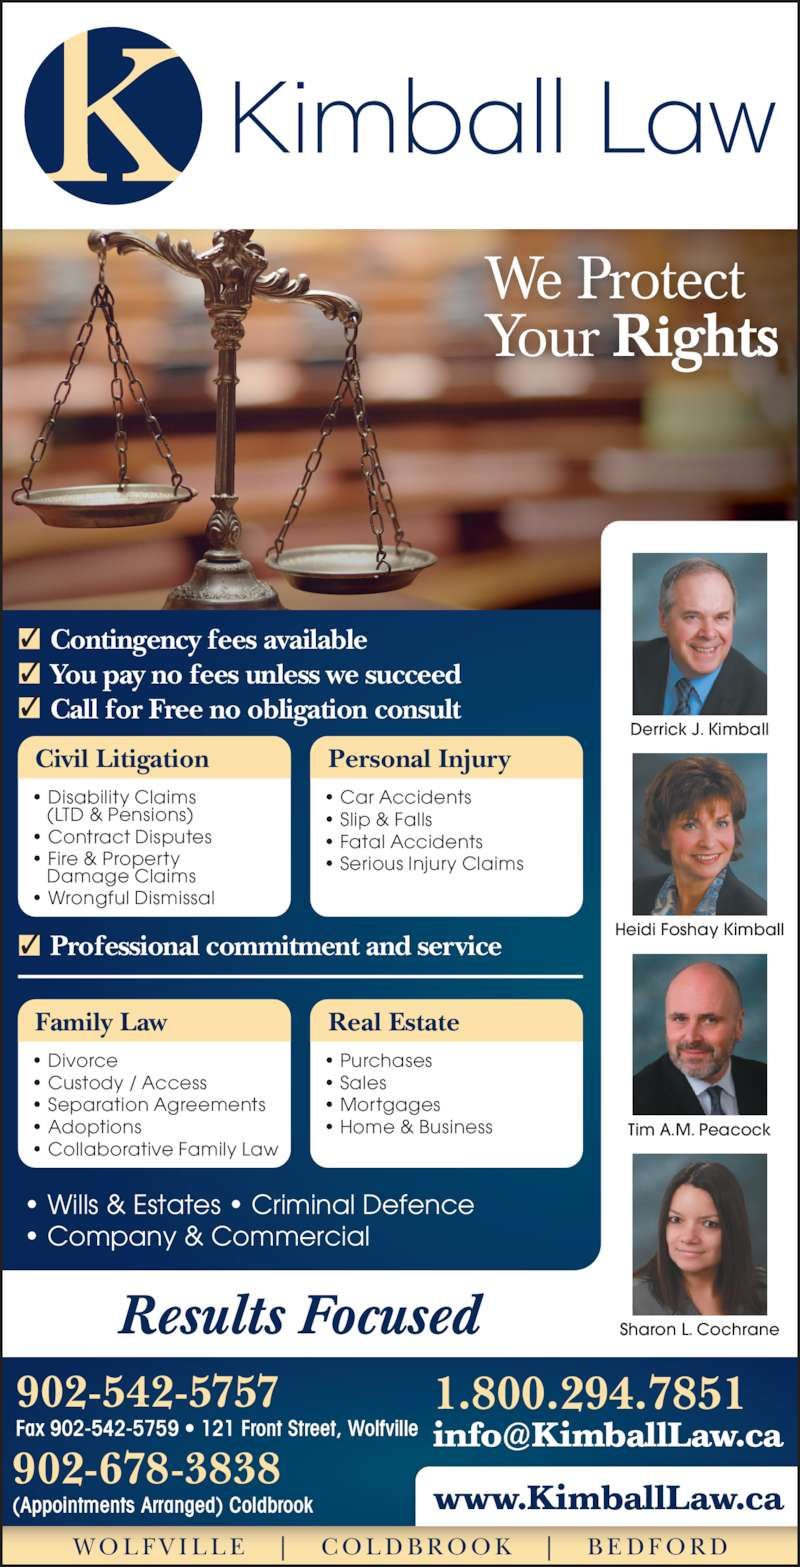 Kimball Law (9025425757) - Display Ad - Results Focused 1.800.294.7851 www.KimballLaw.ca 902-542-5757 Fax 902-542-5759 ? 121 Front Street, Wolfville 902-678-3838 (Appointments Arranged) Coldbrook W O L F V I L L E    |    C O L D B R O O K    |    B E D F O R D ? Wills & Estates ? Criminal Defence ? Company & Commercial Civil Litigation ? Disability Claims    (LTD & Pensions) ? Fire & Property    Damage Claims ? Wrongful Dismissal Personal Injury ? Car Accidents ? Slip & Falls ? Fatal Accidents ? Serious Injury Claims Family Law ? Divorce ? Custody / Access ? Separation Agreements ? Contract Disputes ? Adoptions ? Collaborative Family Law Real Estate ? Purchases ? Sales ? Mortgages Professional commitment and service? Contingency fees available You pay no fees unless we succeed Call for Free no obligation consult We Protect Your Rights Heidi Foshay Kimball Tim A.M. Peacock Sharon L. Cochrane Derrick J. Kimball ? Home & Business